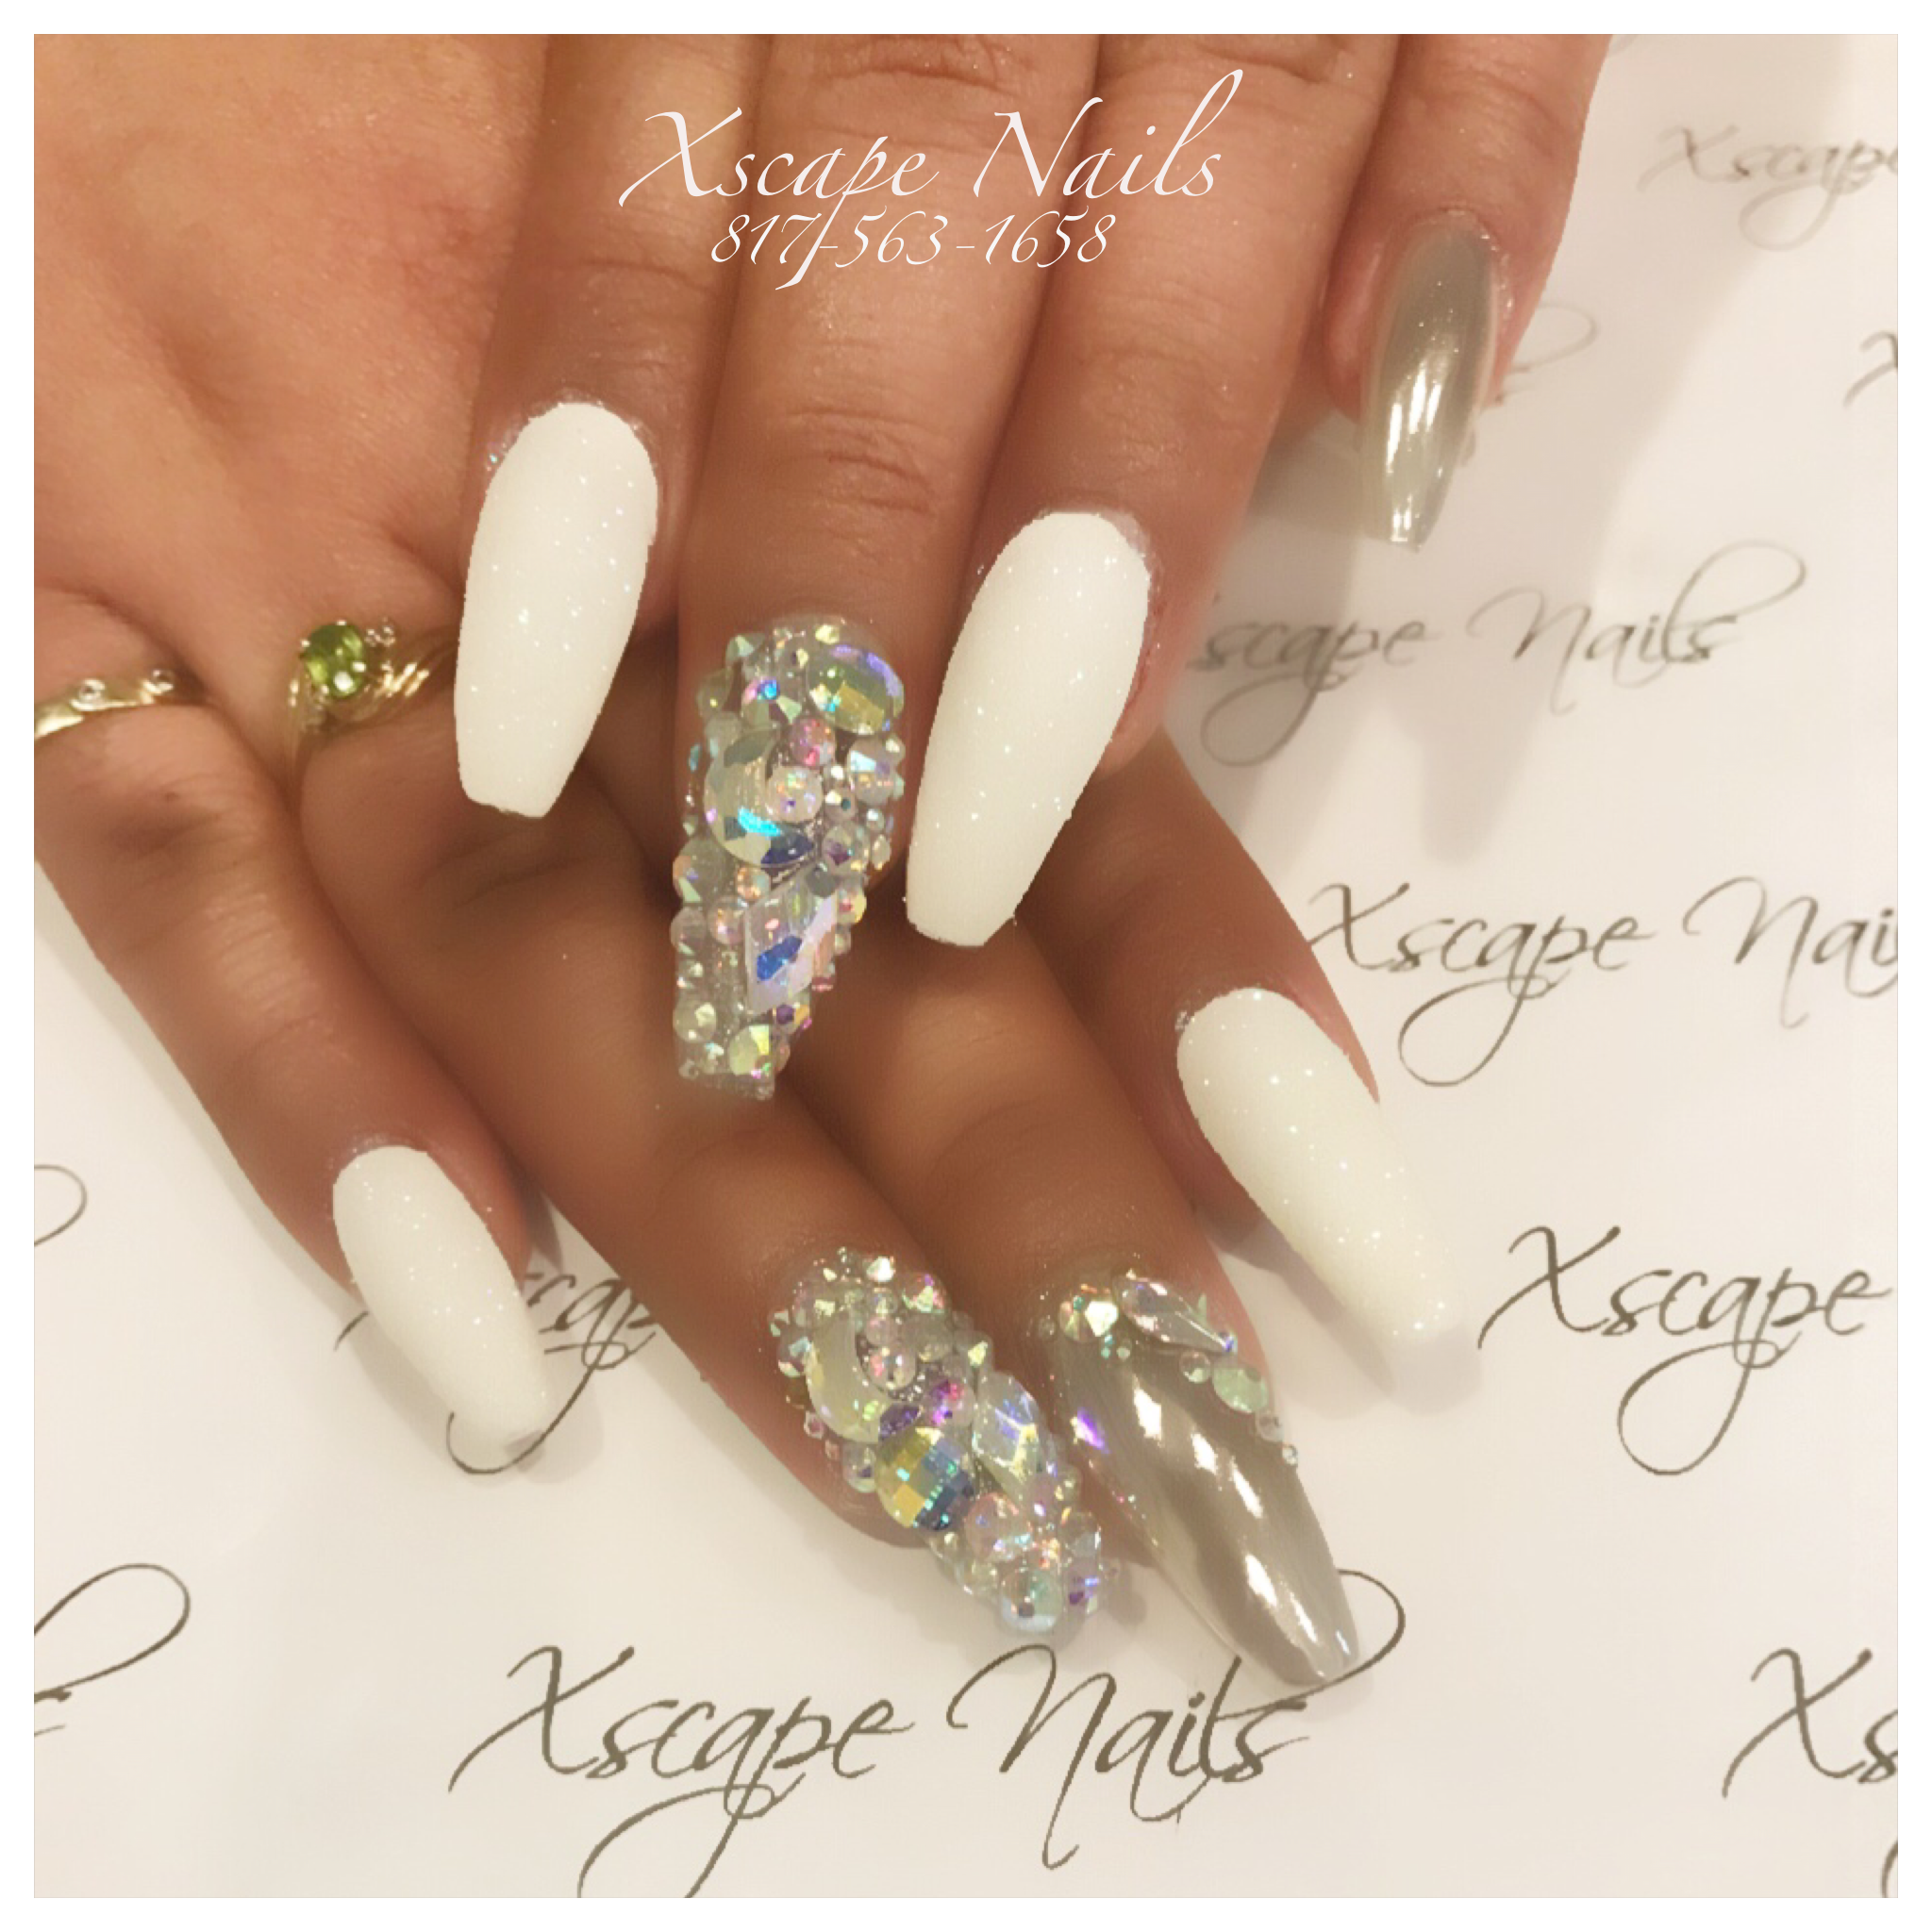 New years nails cute nails designs pinterest new years nails prinsesfo Images